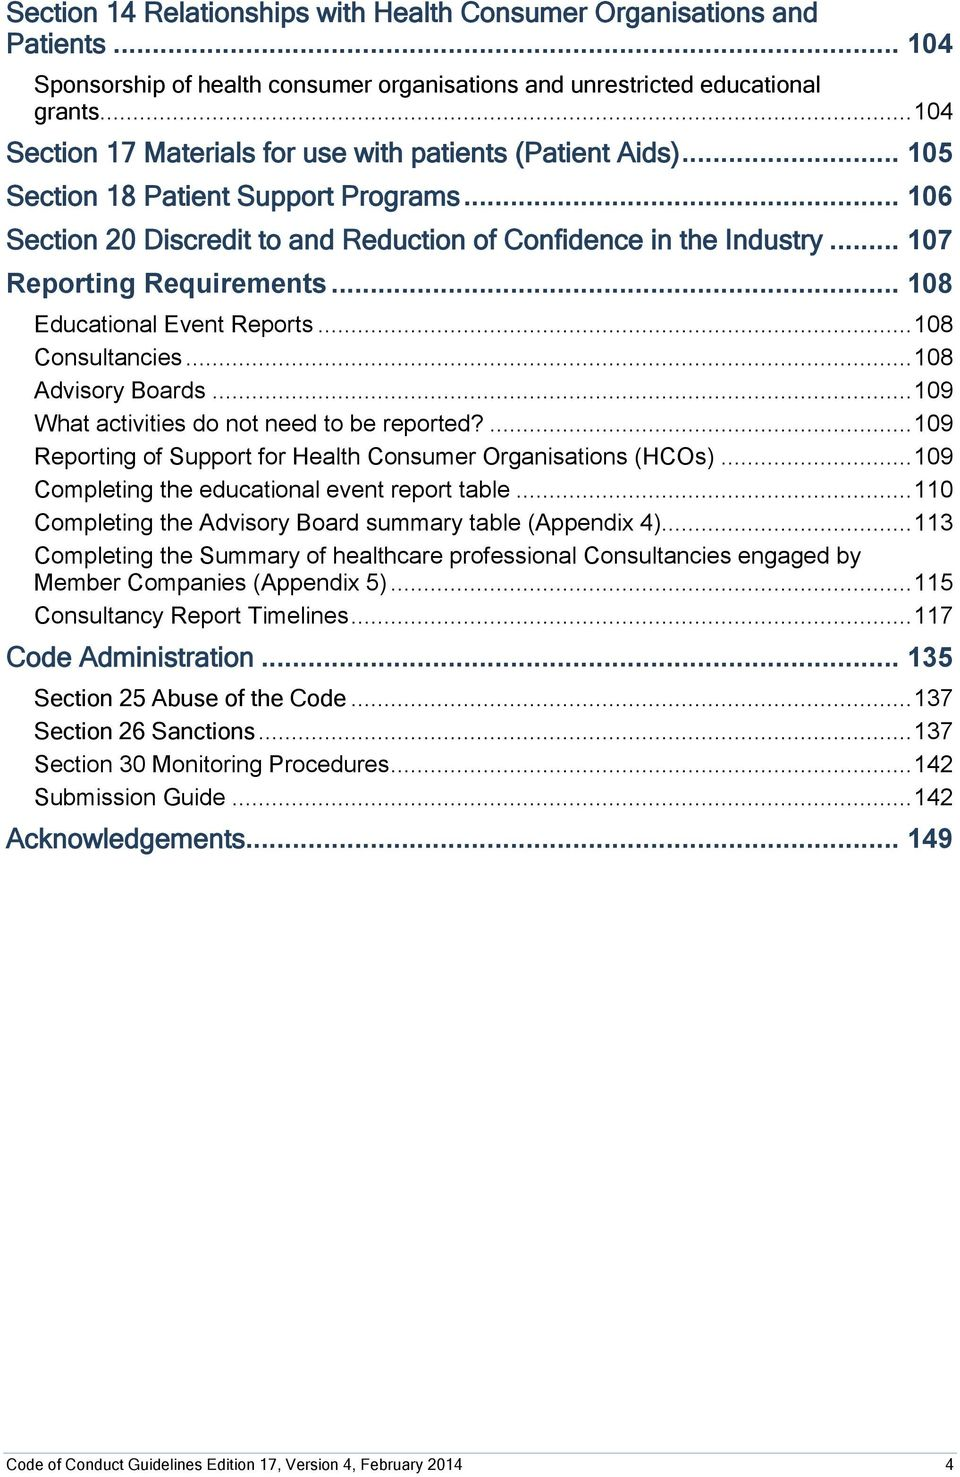 .. 107 Reporting Requirements... 108 Educational Event Reports... 108 Consultancies... 108 Advisory Boards... 109 What activities do not need to be reported?